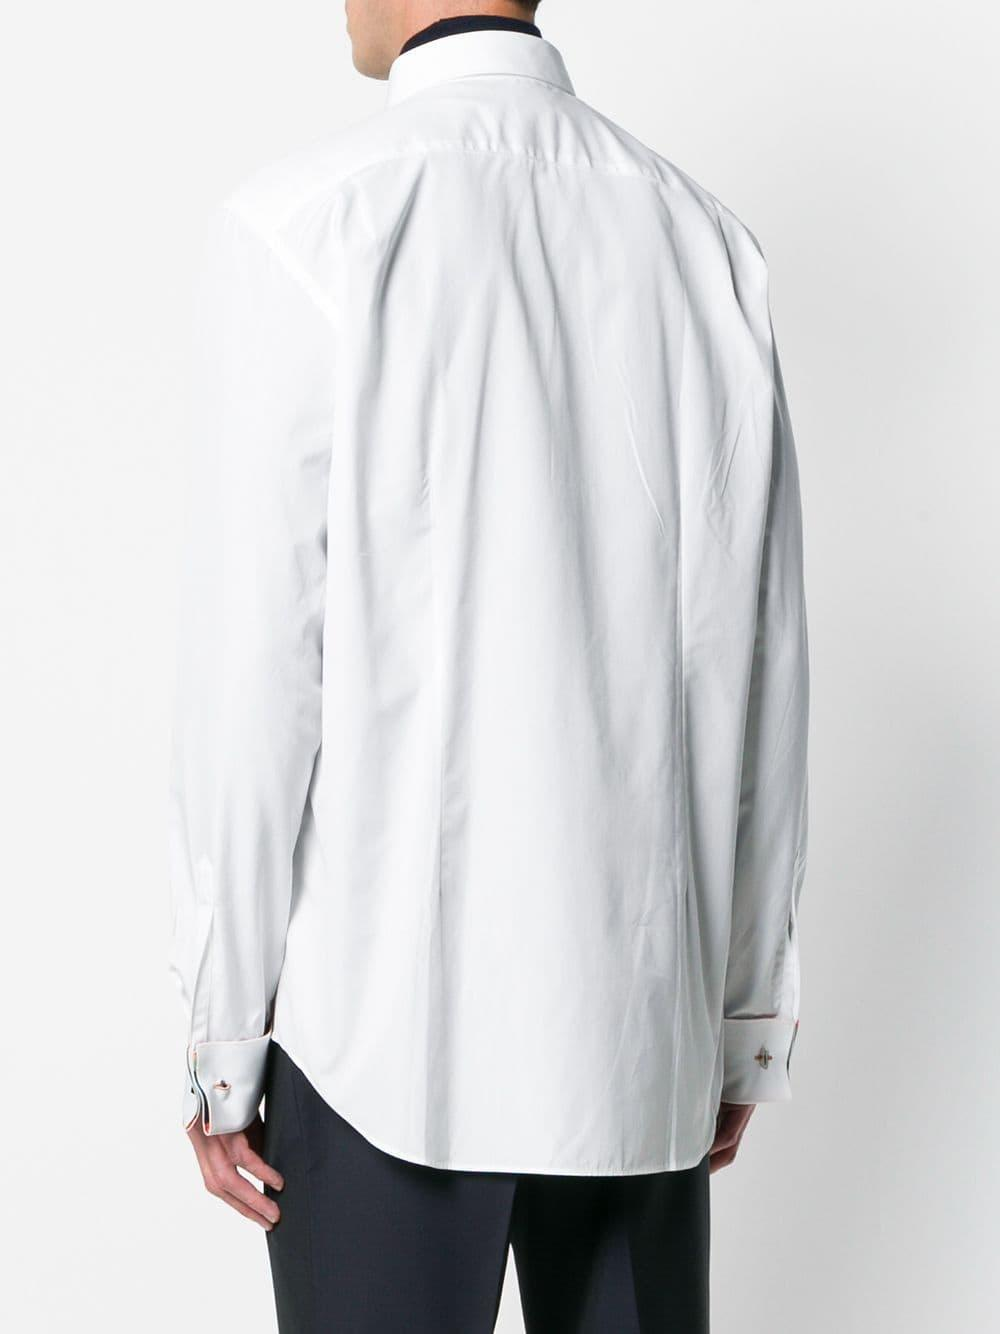 Paul Smith Cotton Pleated Long-sleeve Shirt in White for Men